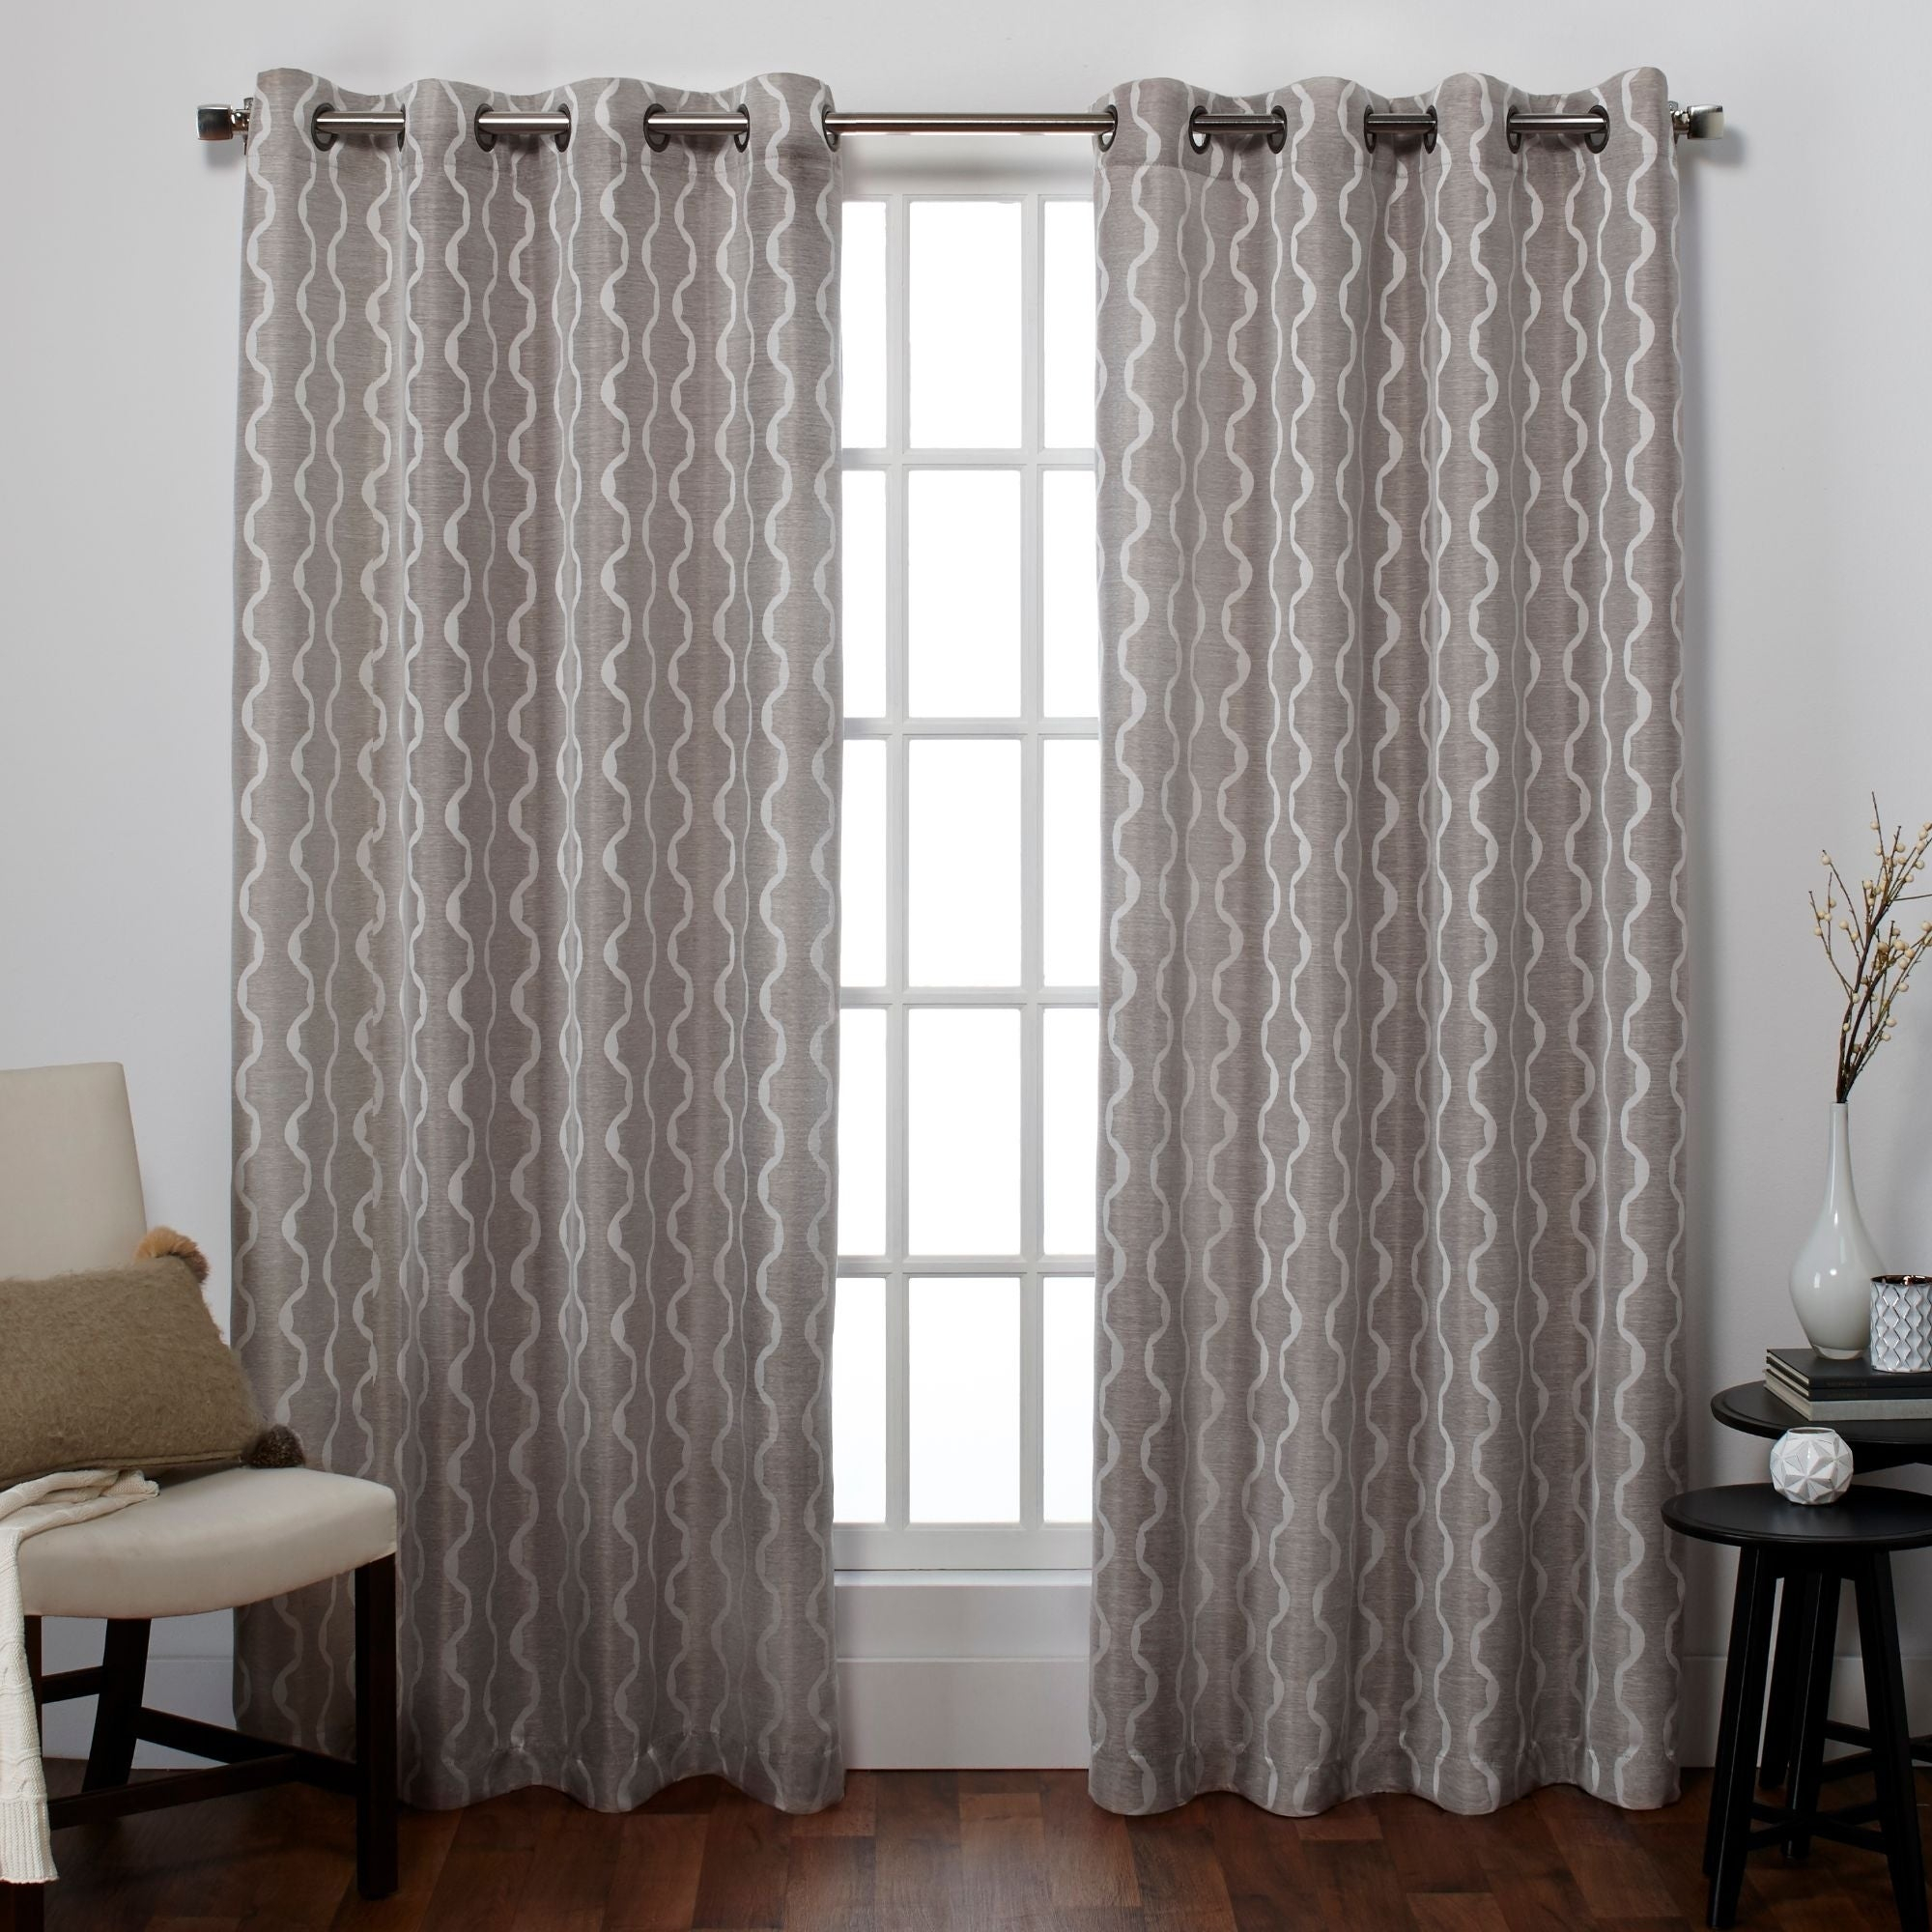 Ati Home Baroque Linen Grommet Top Curtain Panel Pair For Baroque Linen Grommet Top Curtain Panel Pairs (View 2 of 20)